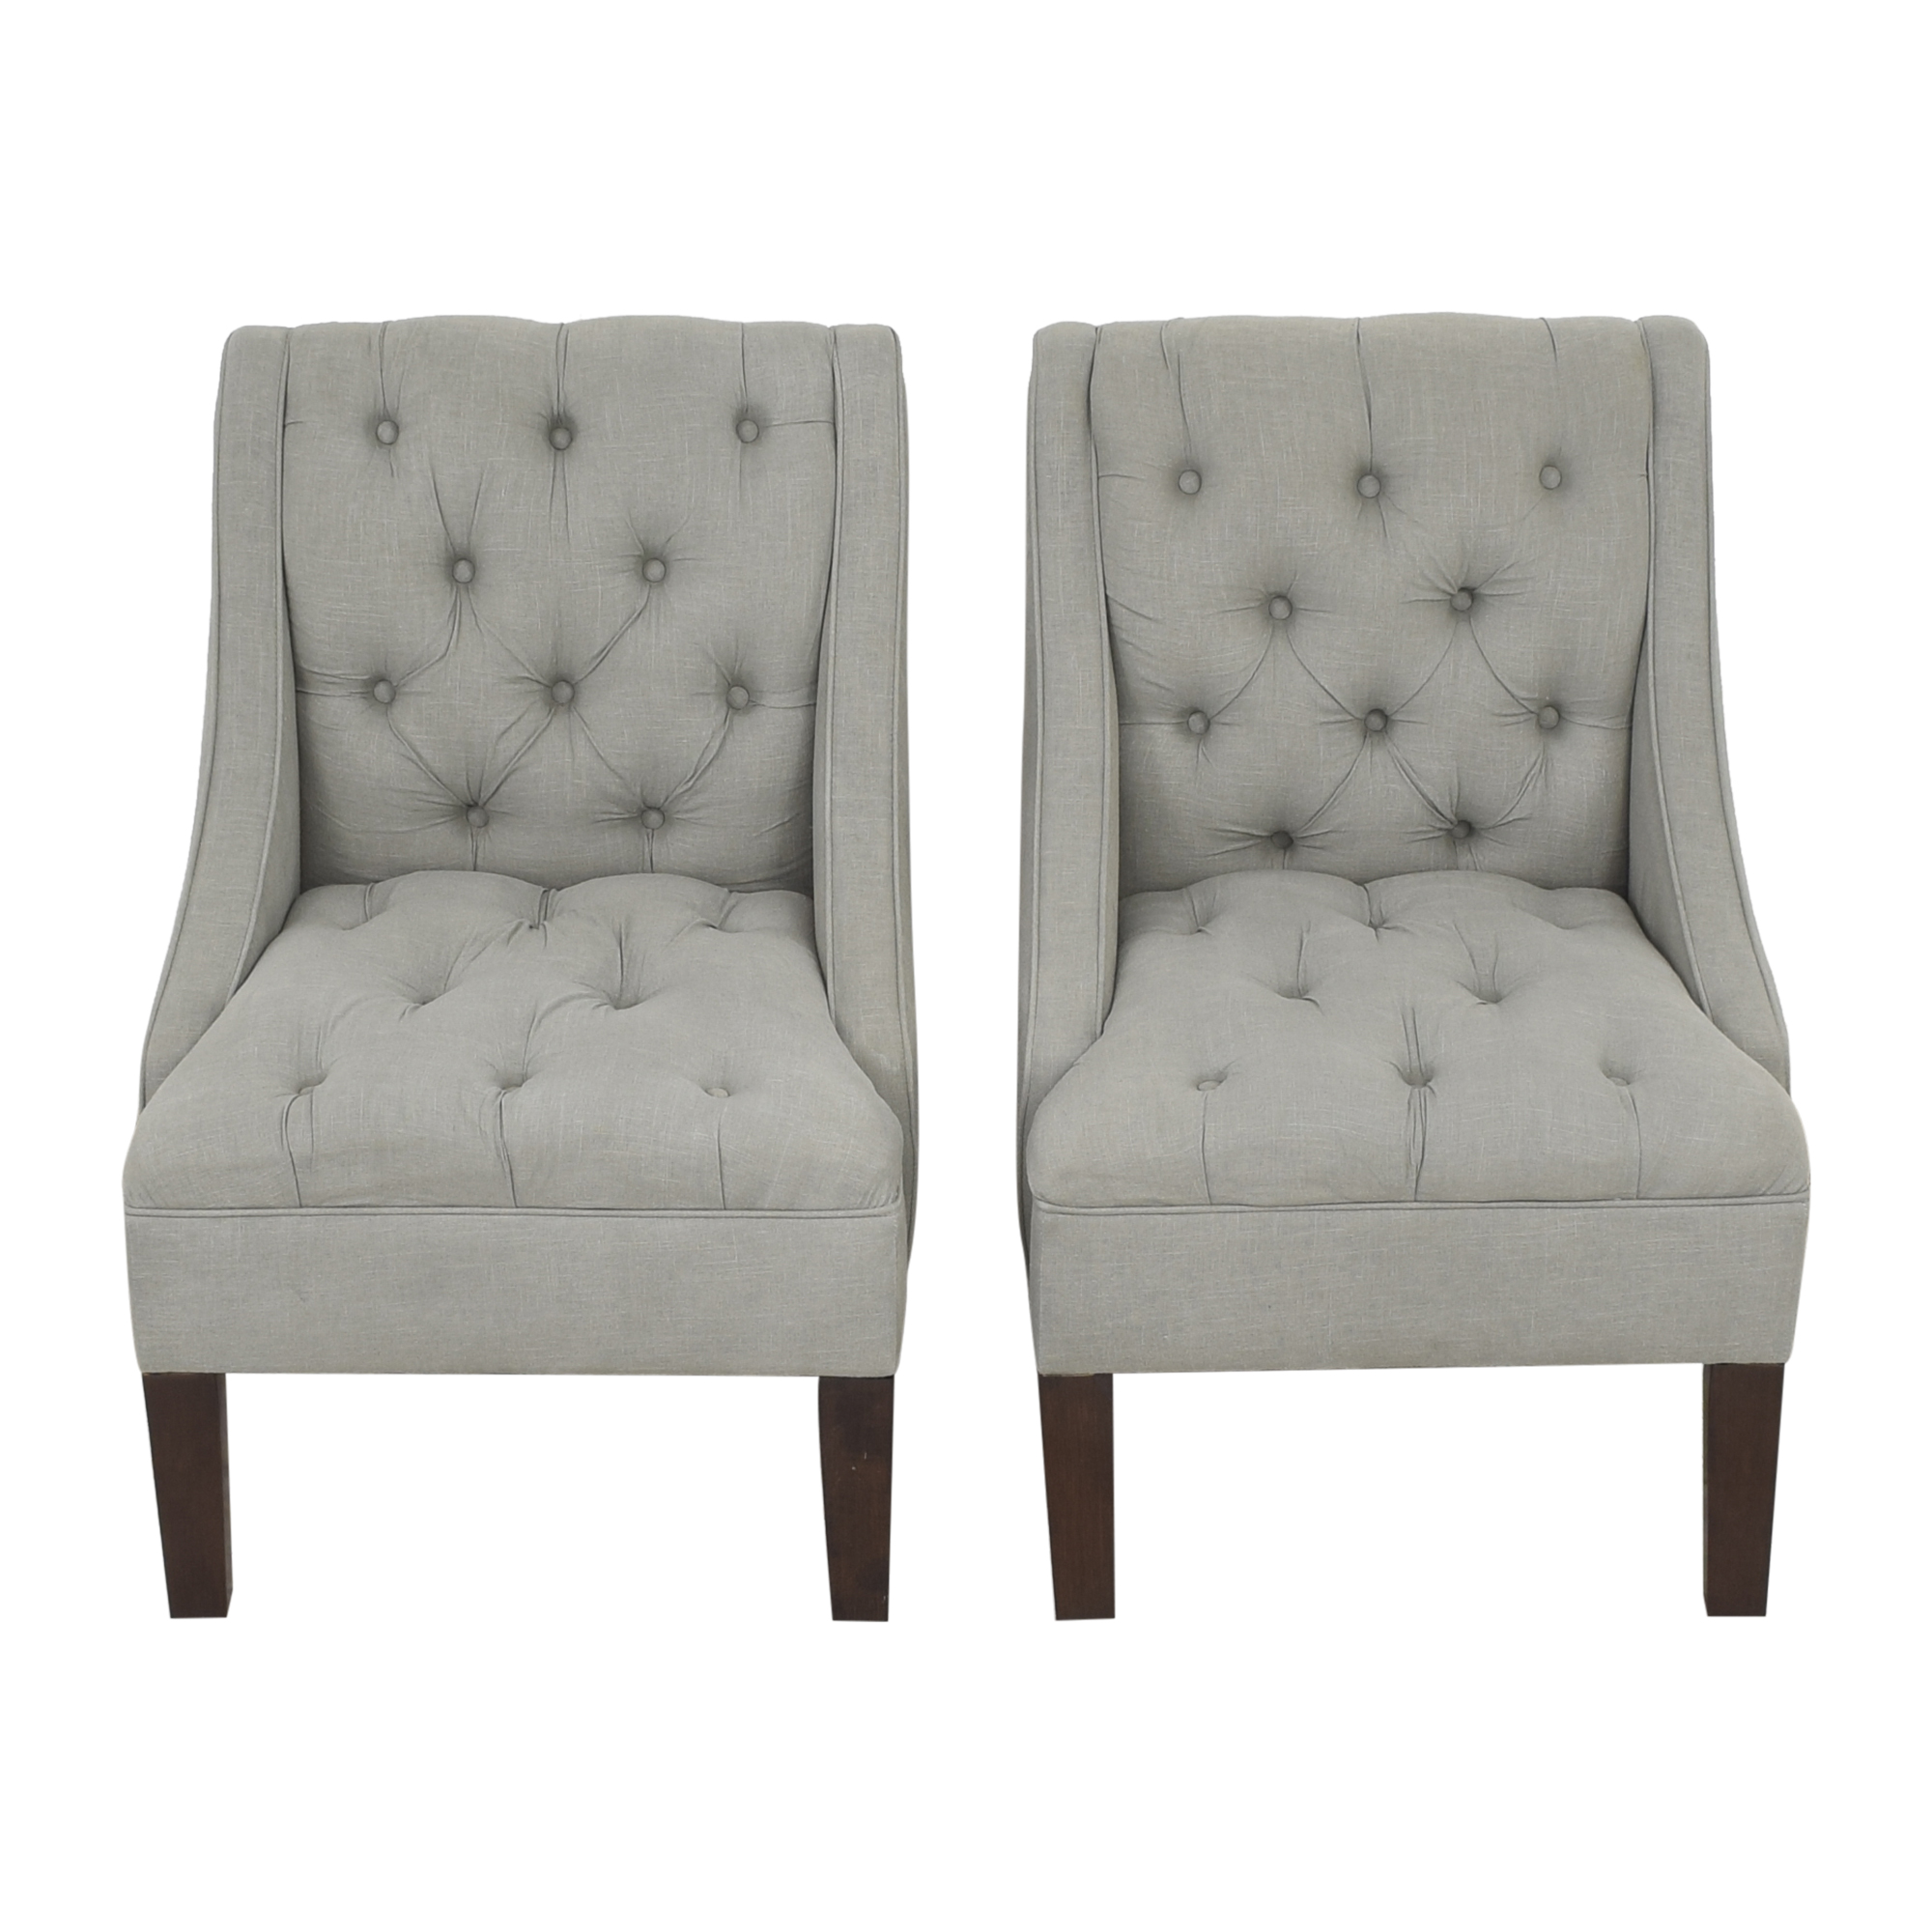 Skyline Furniture Tufted Dining Chairs Skyline Furniture